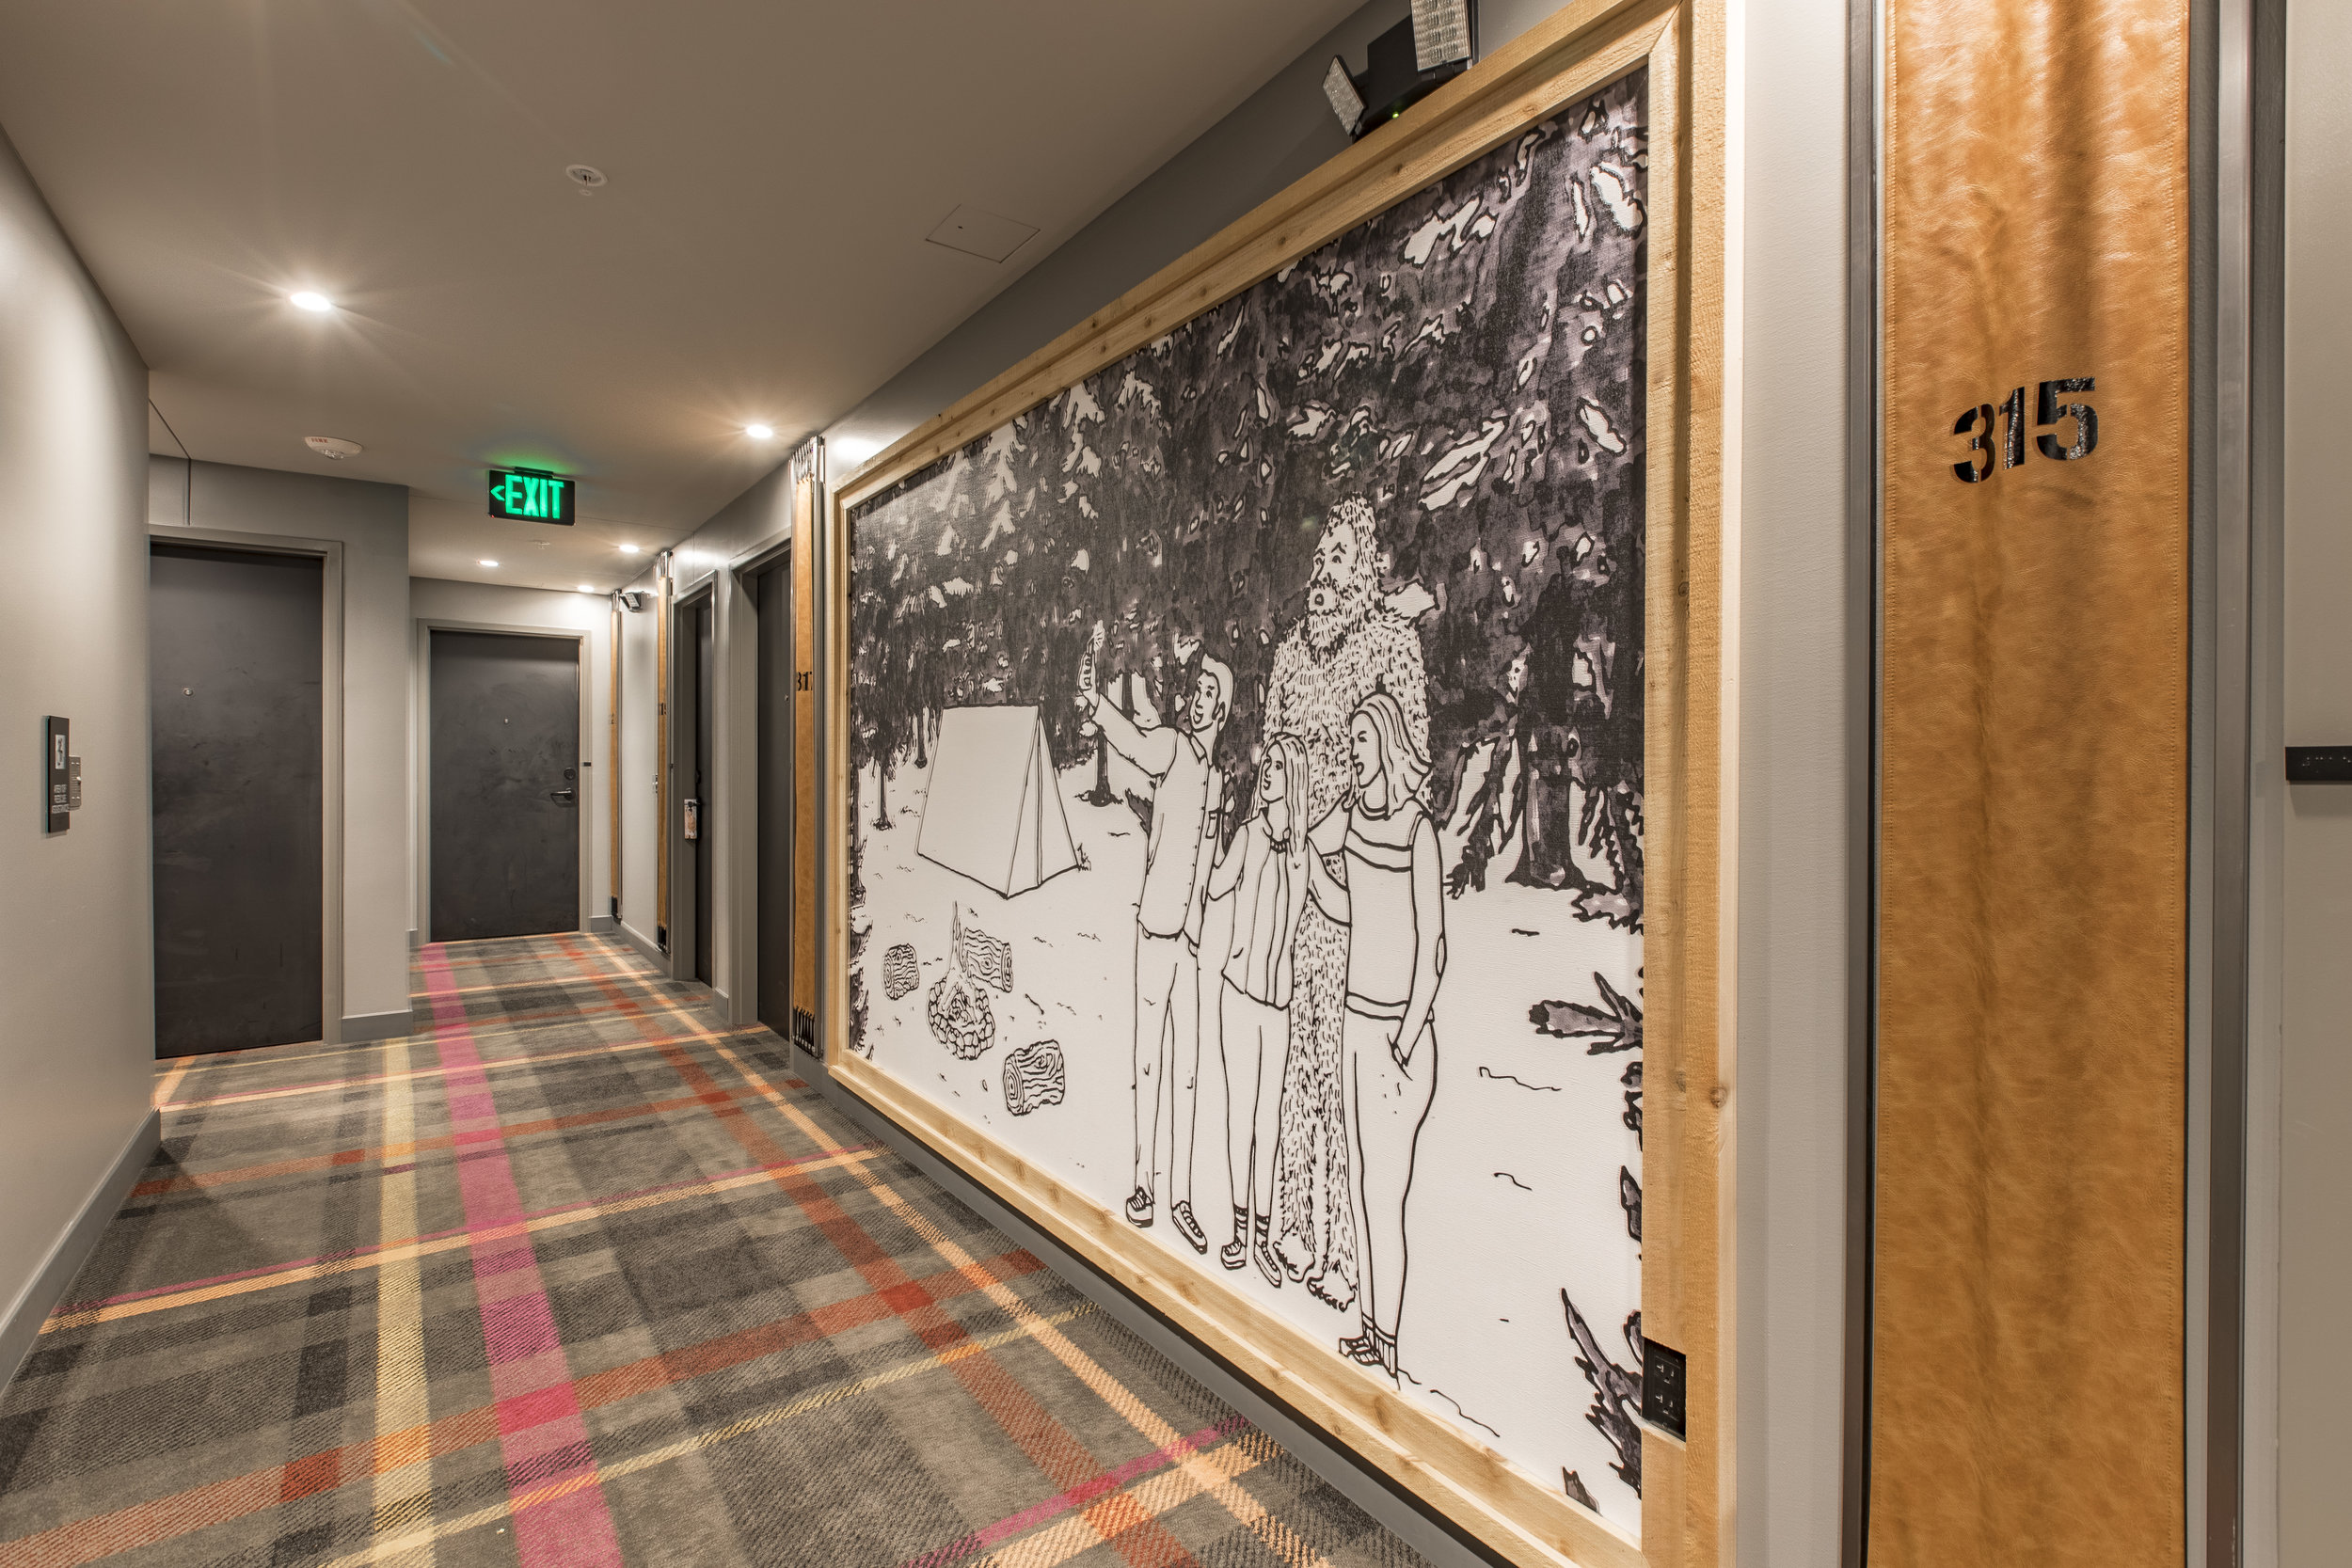 MOXY, SEATTLE - Curated by Indiewalls